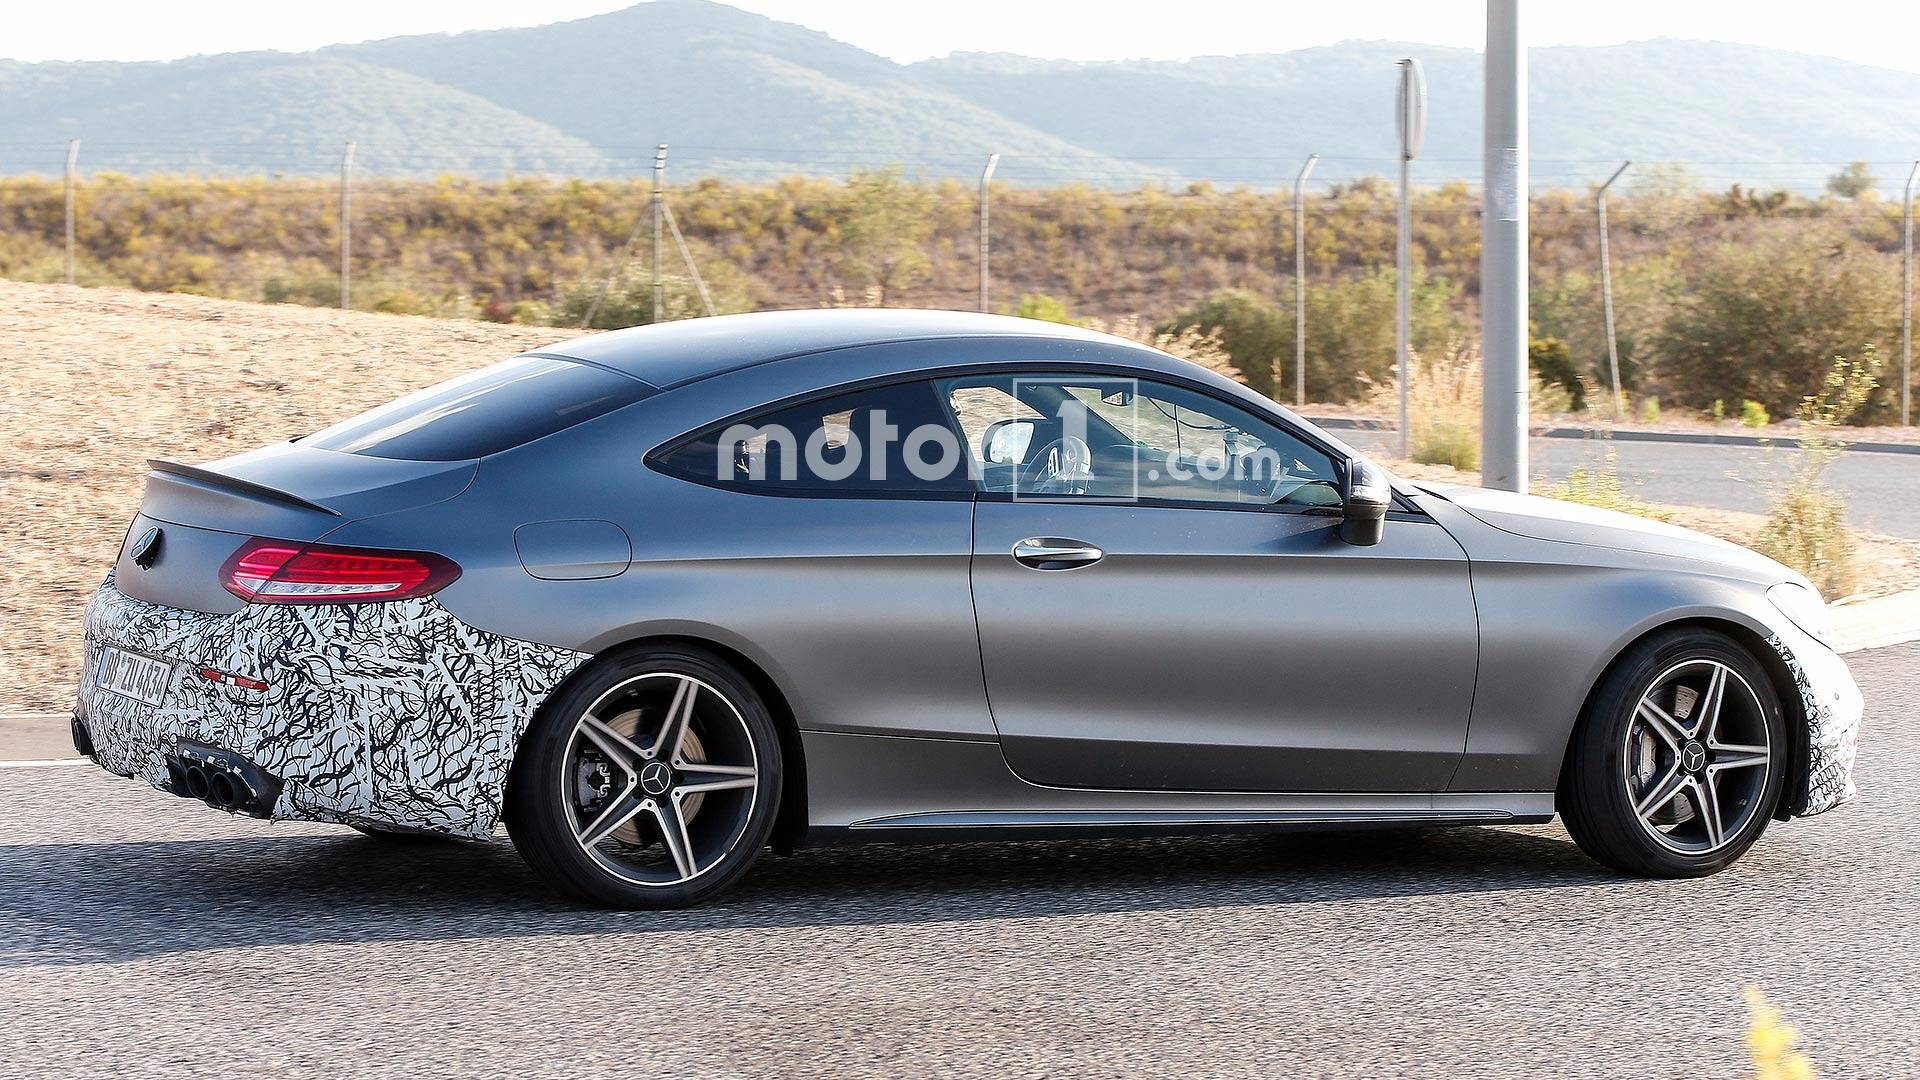 Refreshed Mercedes-AMG C43 and C63 Coupes Spied Testing